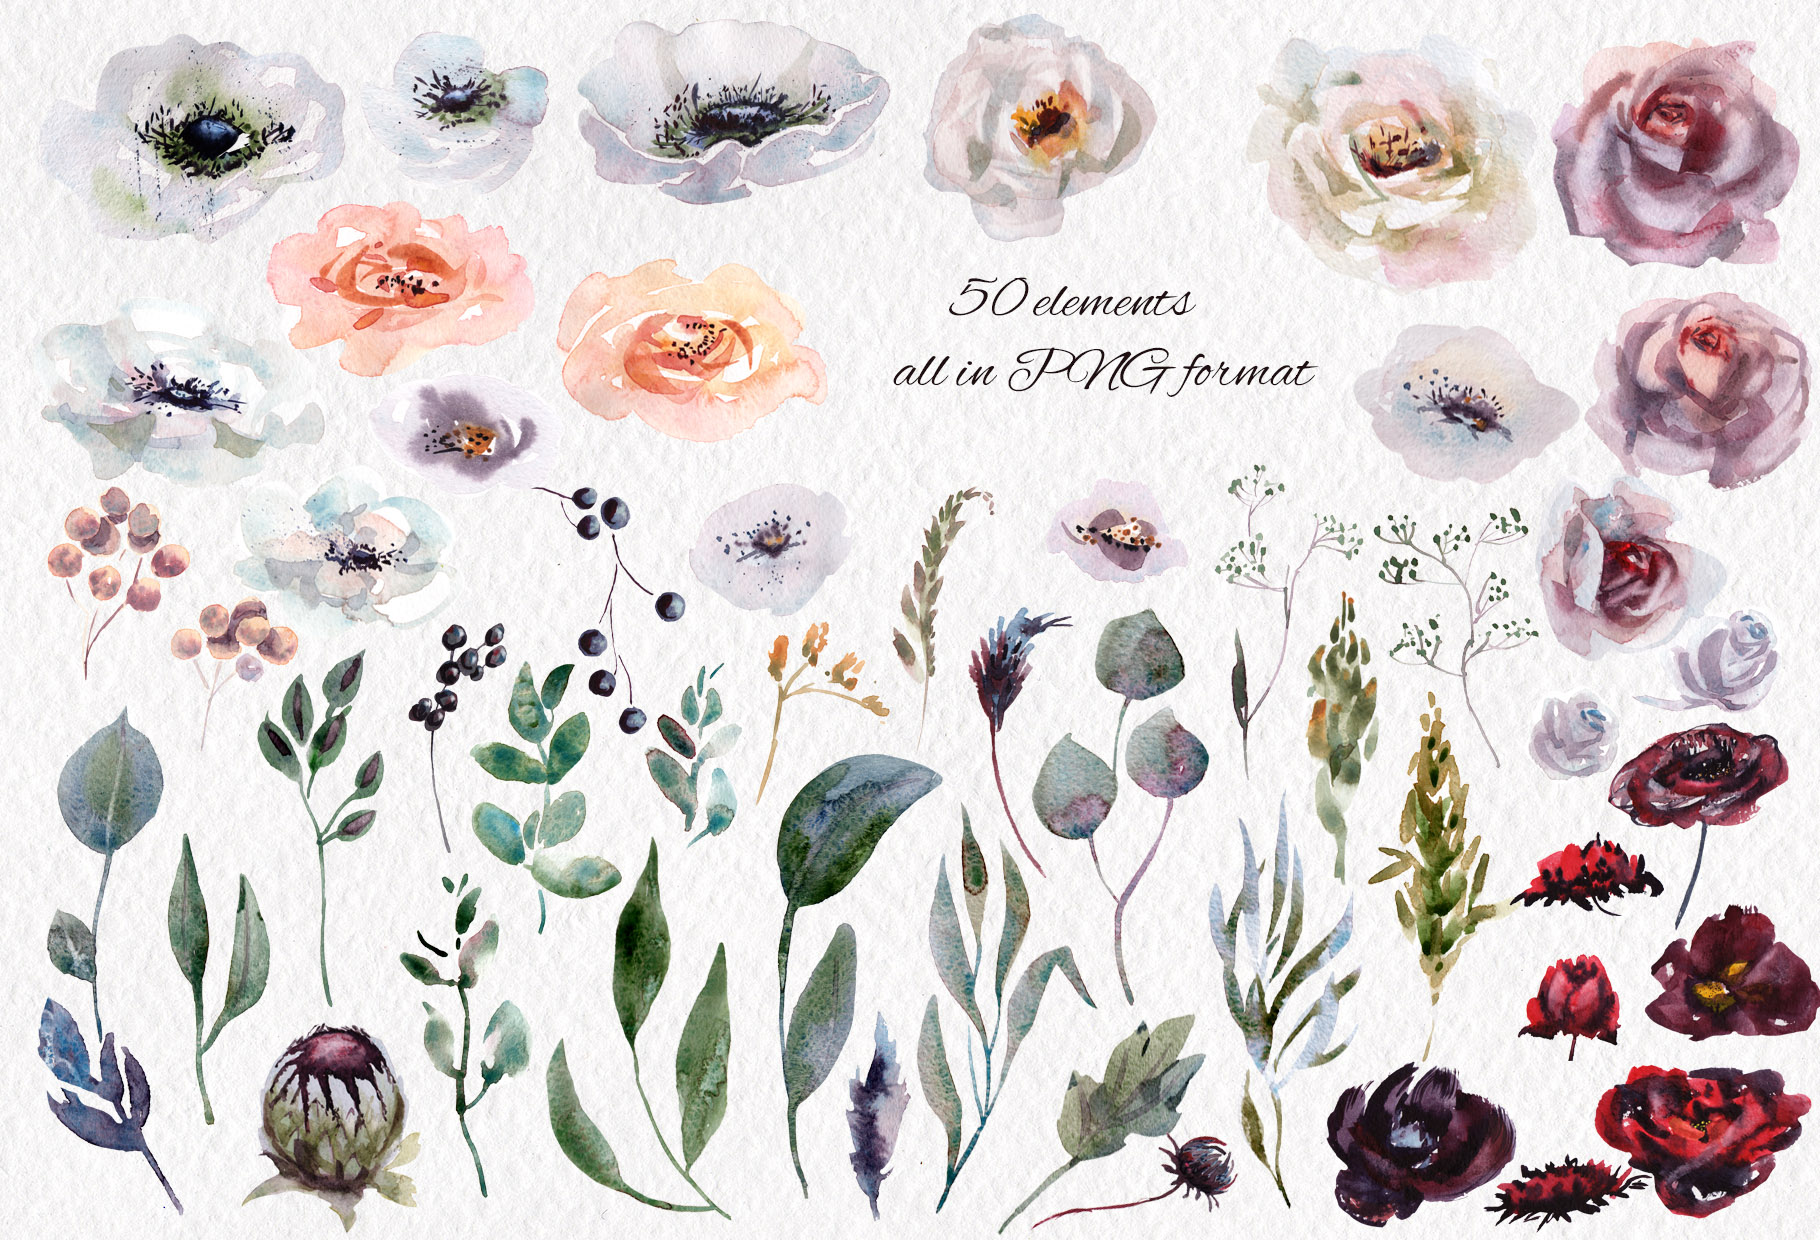 Watercolor flower design clipart example image 8